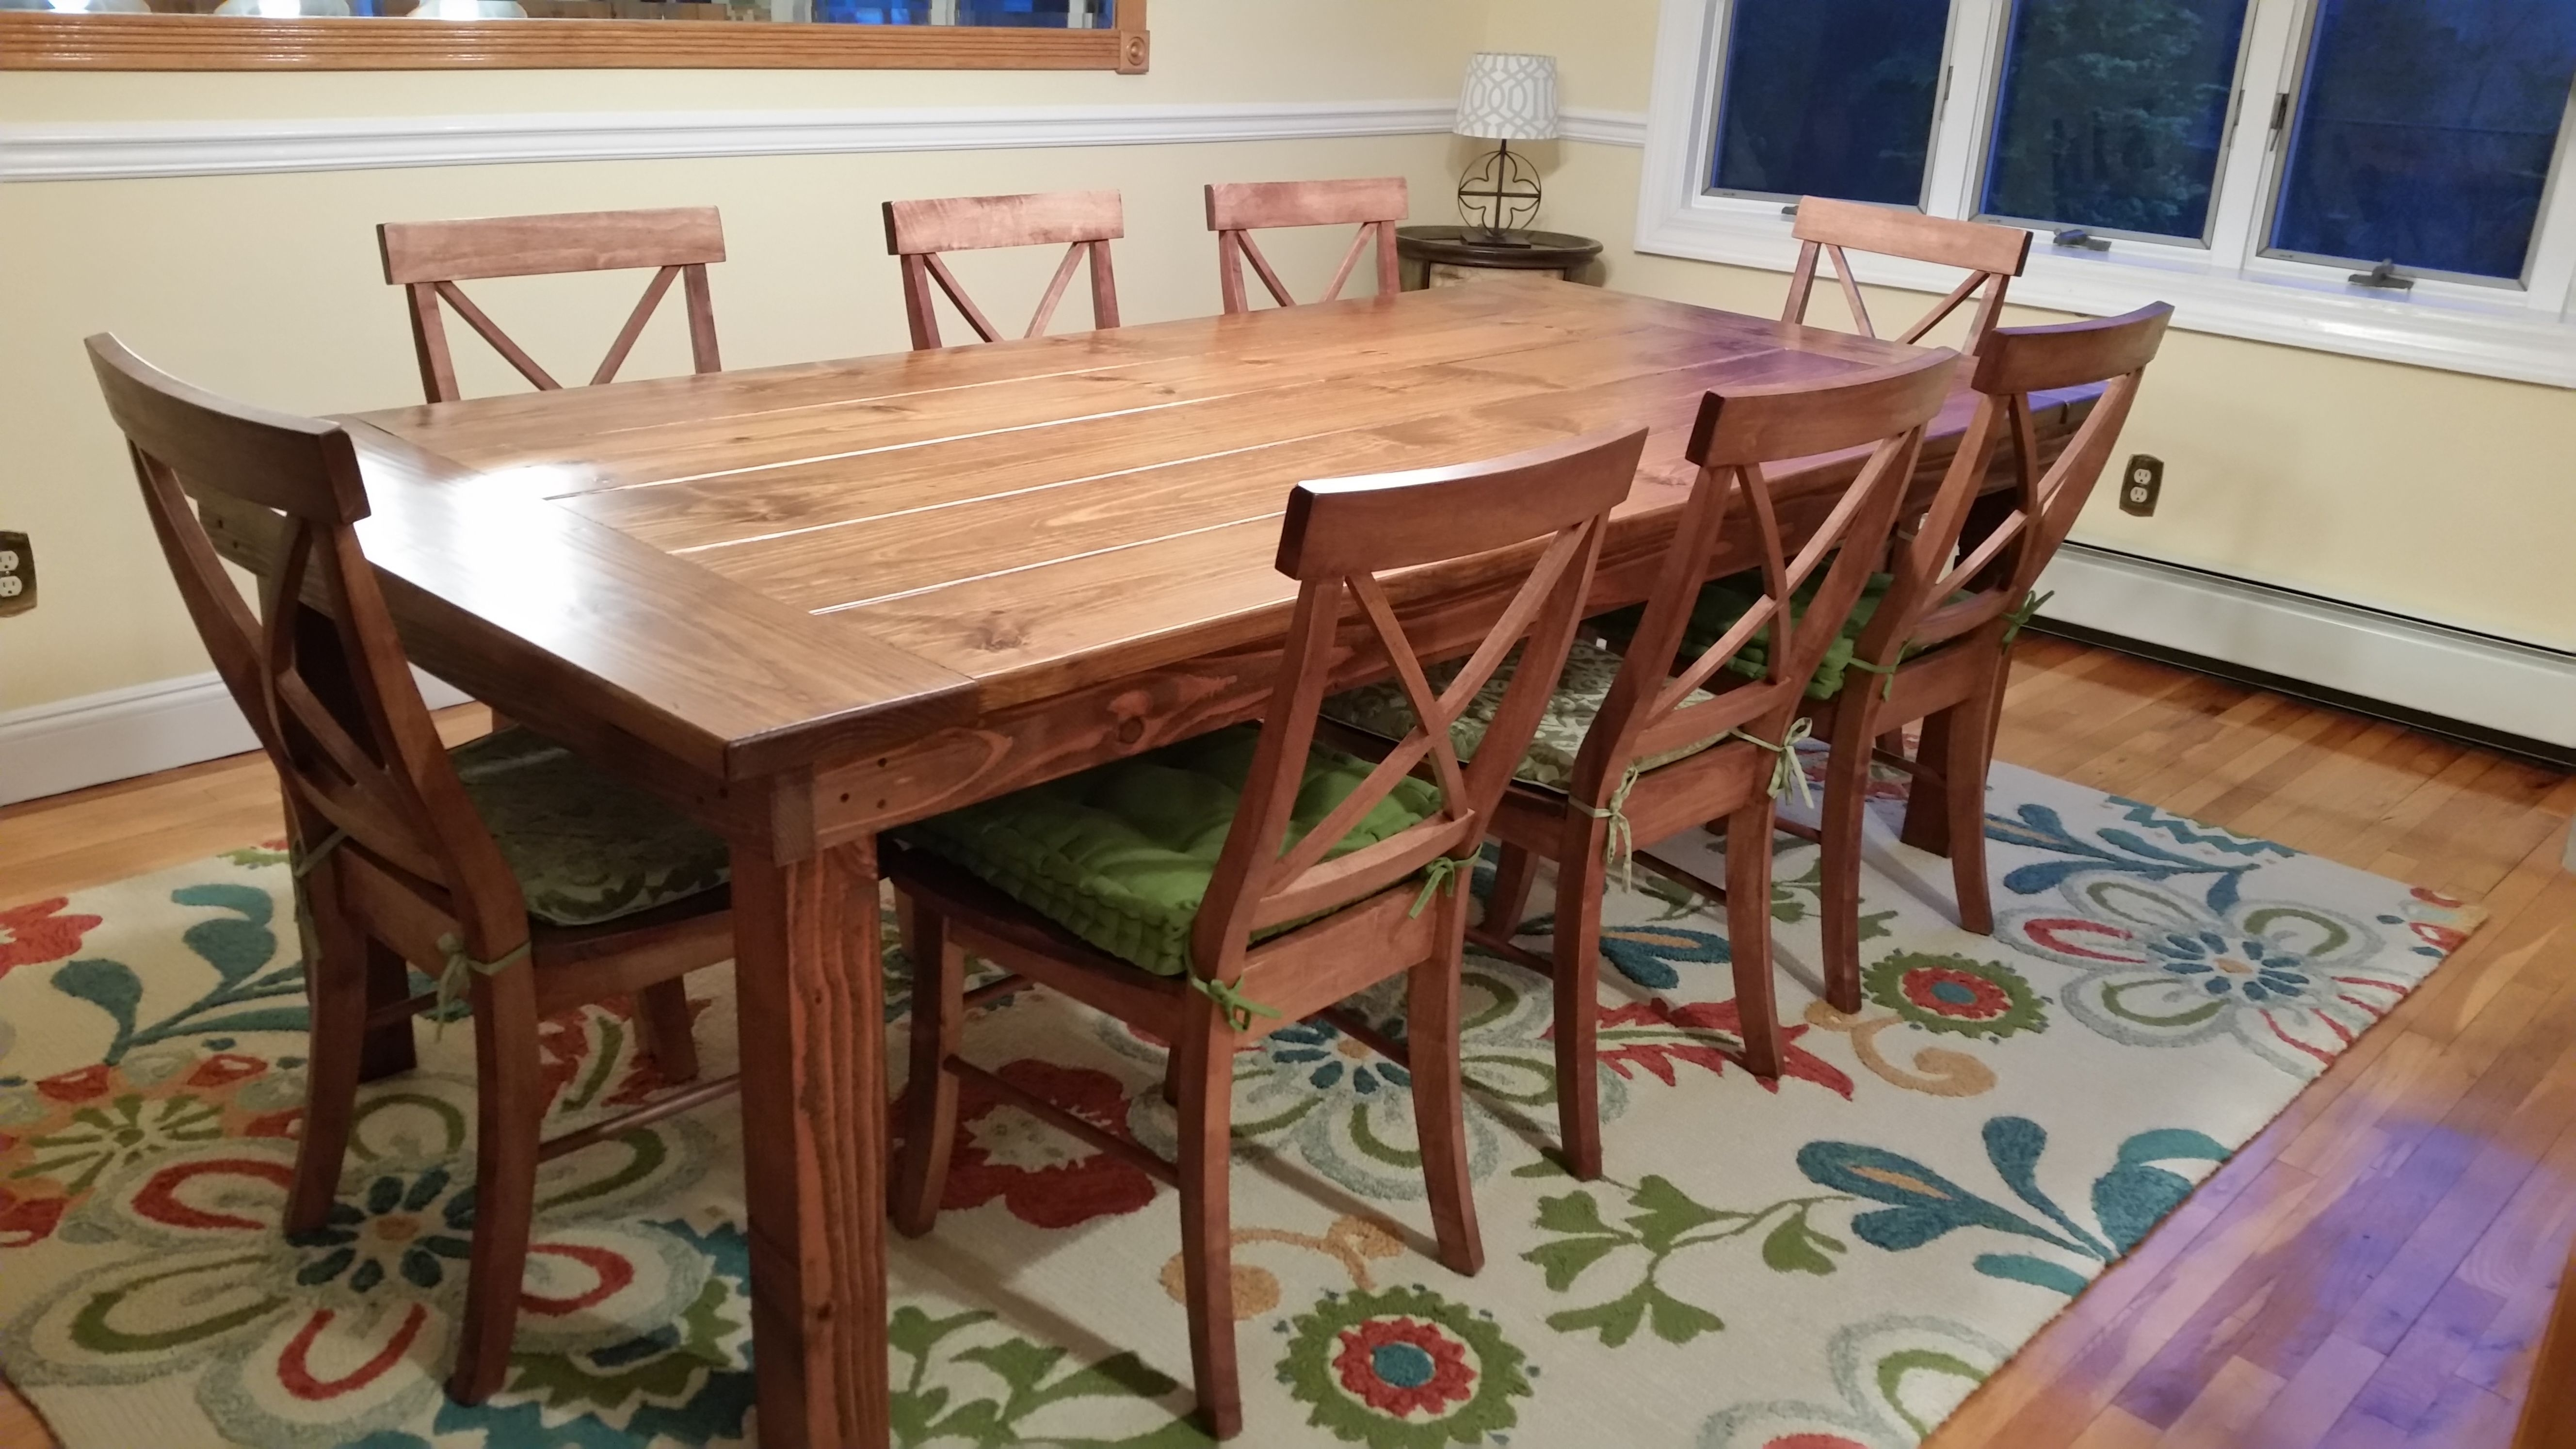 Farmhouse Table | Chairs | Pinterest | Farmhouse Table, Farmhouse With Regard To Current Norwood 7 Piece Rectangular Extension Dining Sets With Bench & Uph Side Chairs (Image 5 of 20)